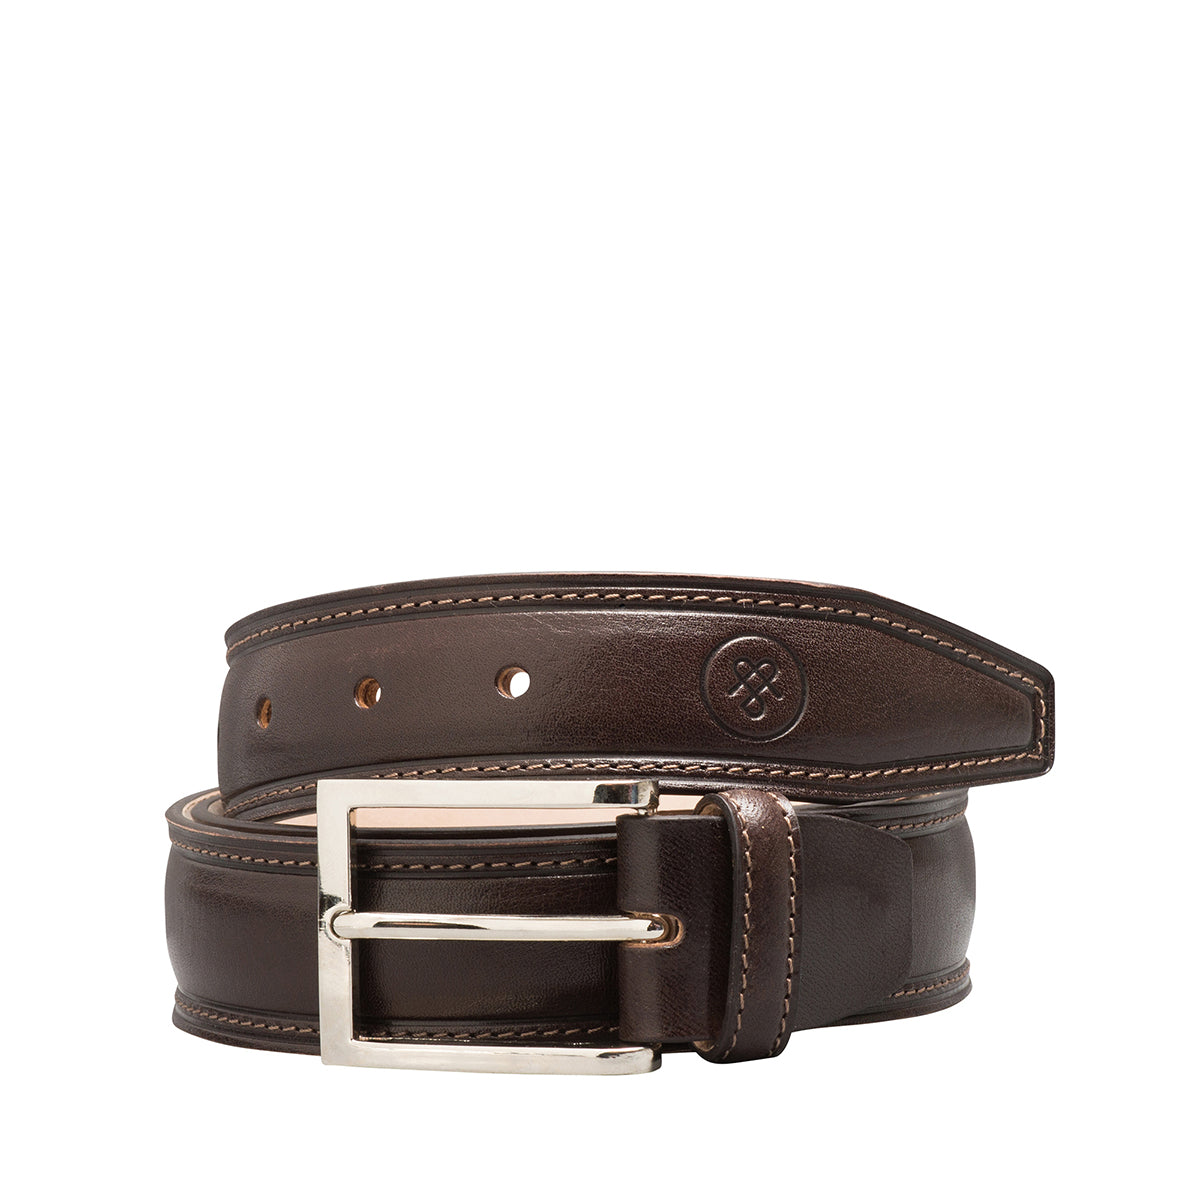 Image 2 of the 'Franco' Chocolate Veg-Tanned Leather Handmade Belt